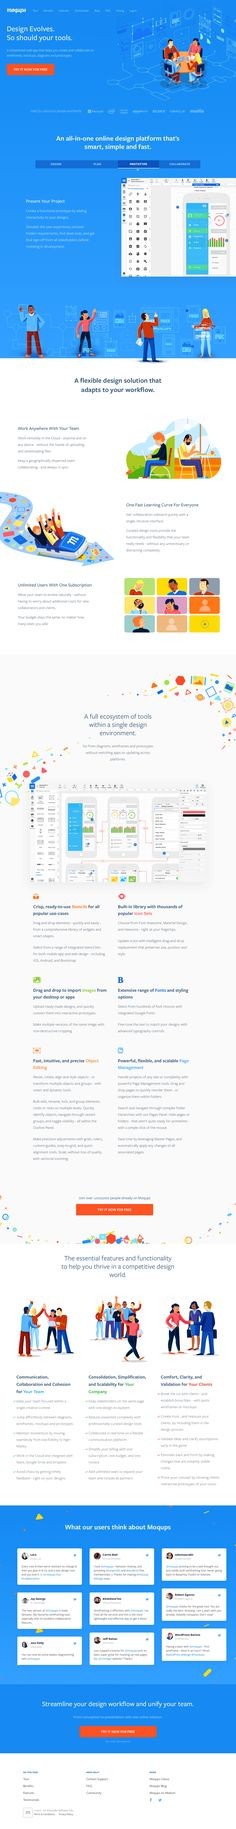 Moqups - Online Mockup, Wireframe & UI Prototyping Tool